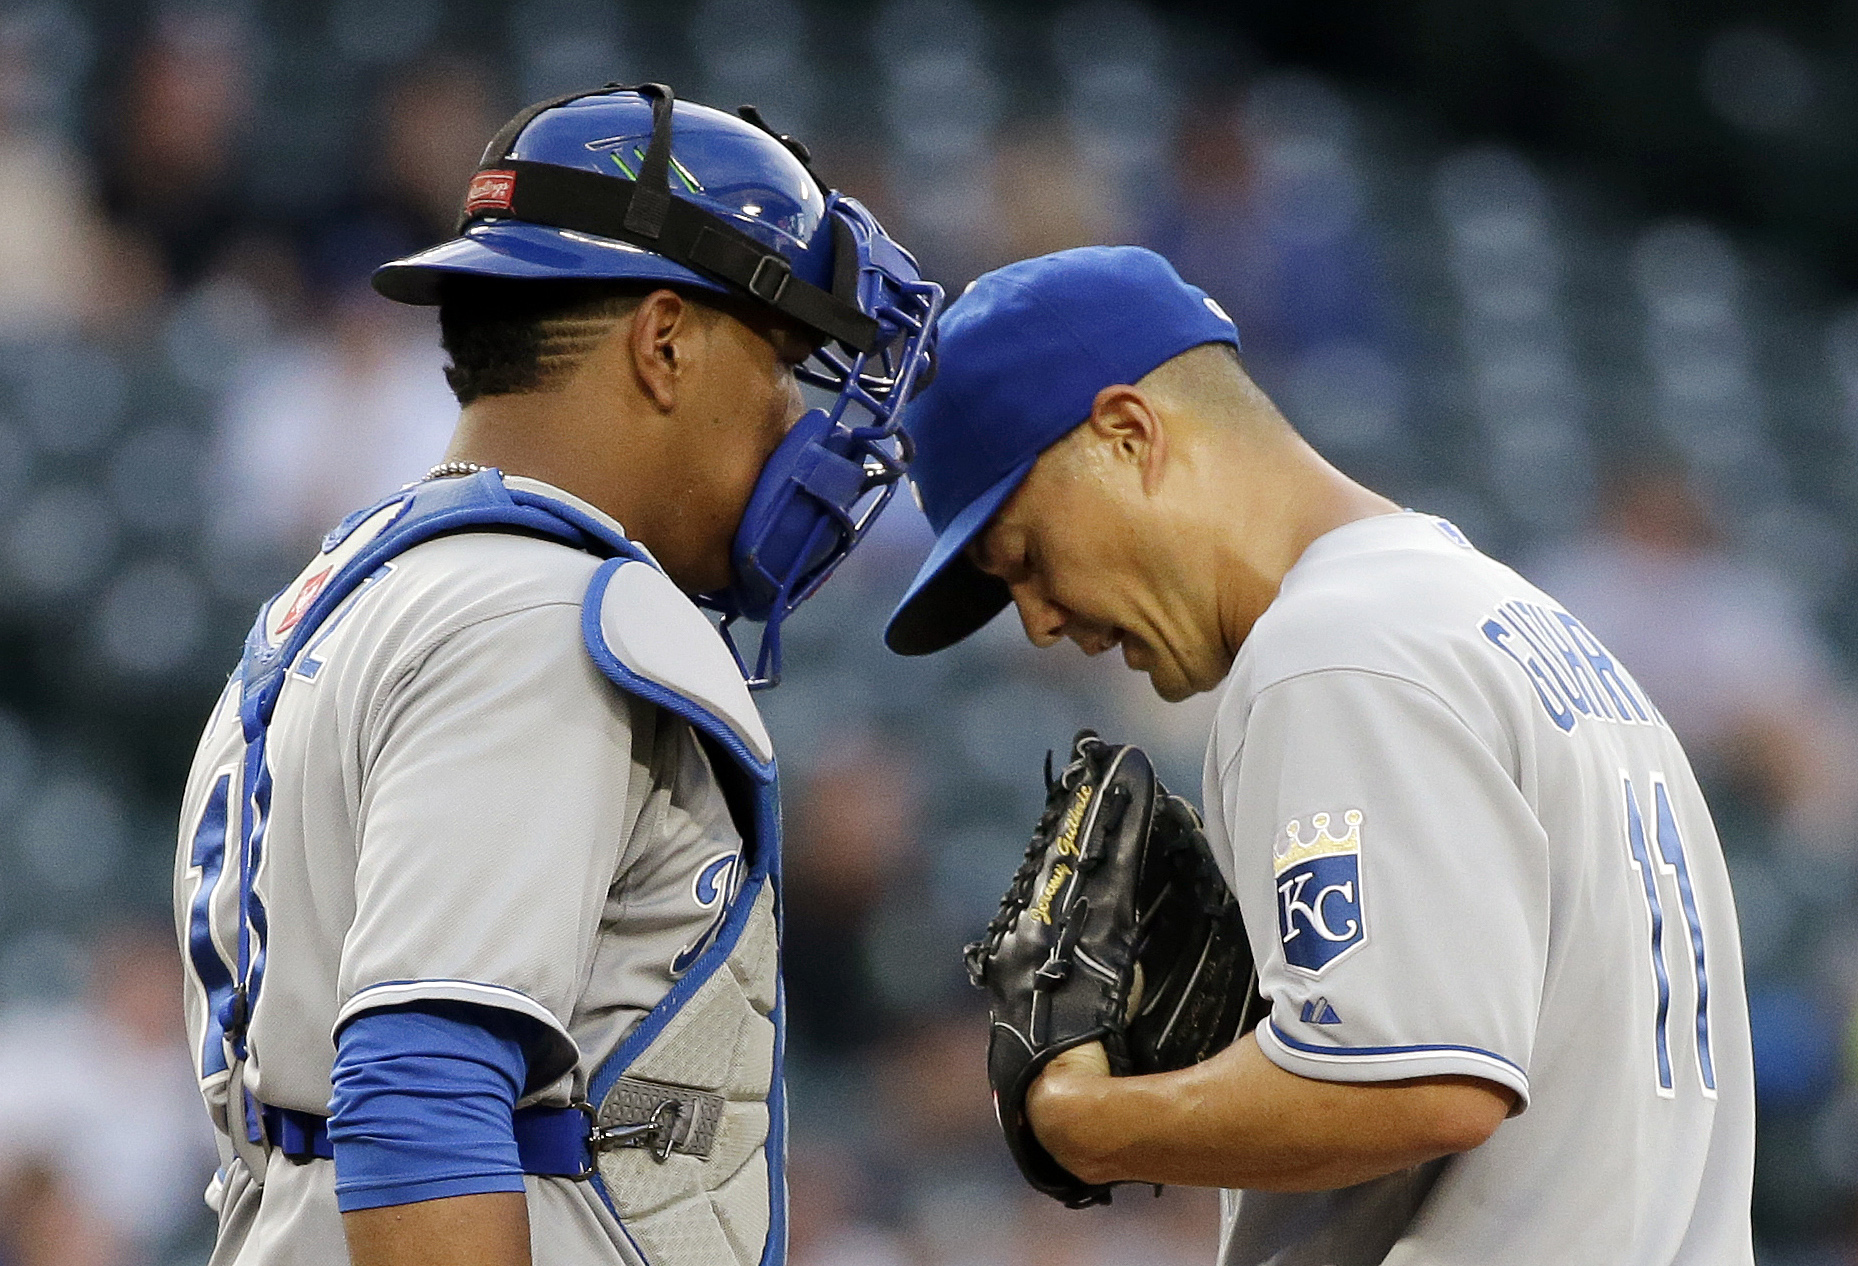 Kansas City Royals starting pitcher Jeremy Guthrie, right, and catcher Salvador Perez talk on the mound after Guthrie loaded the bases to the Seattle Mariners in the fourth inning of a baseball game Tuesday, June 23, 2015, in Seattle. (AP Photo/Elaine Tho